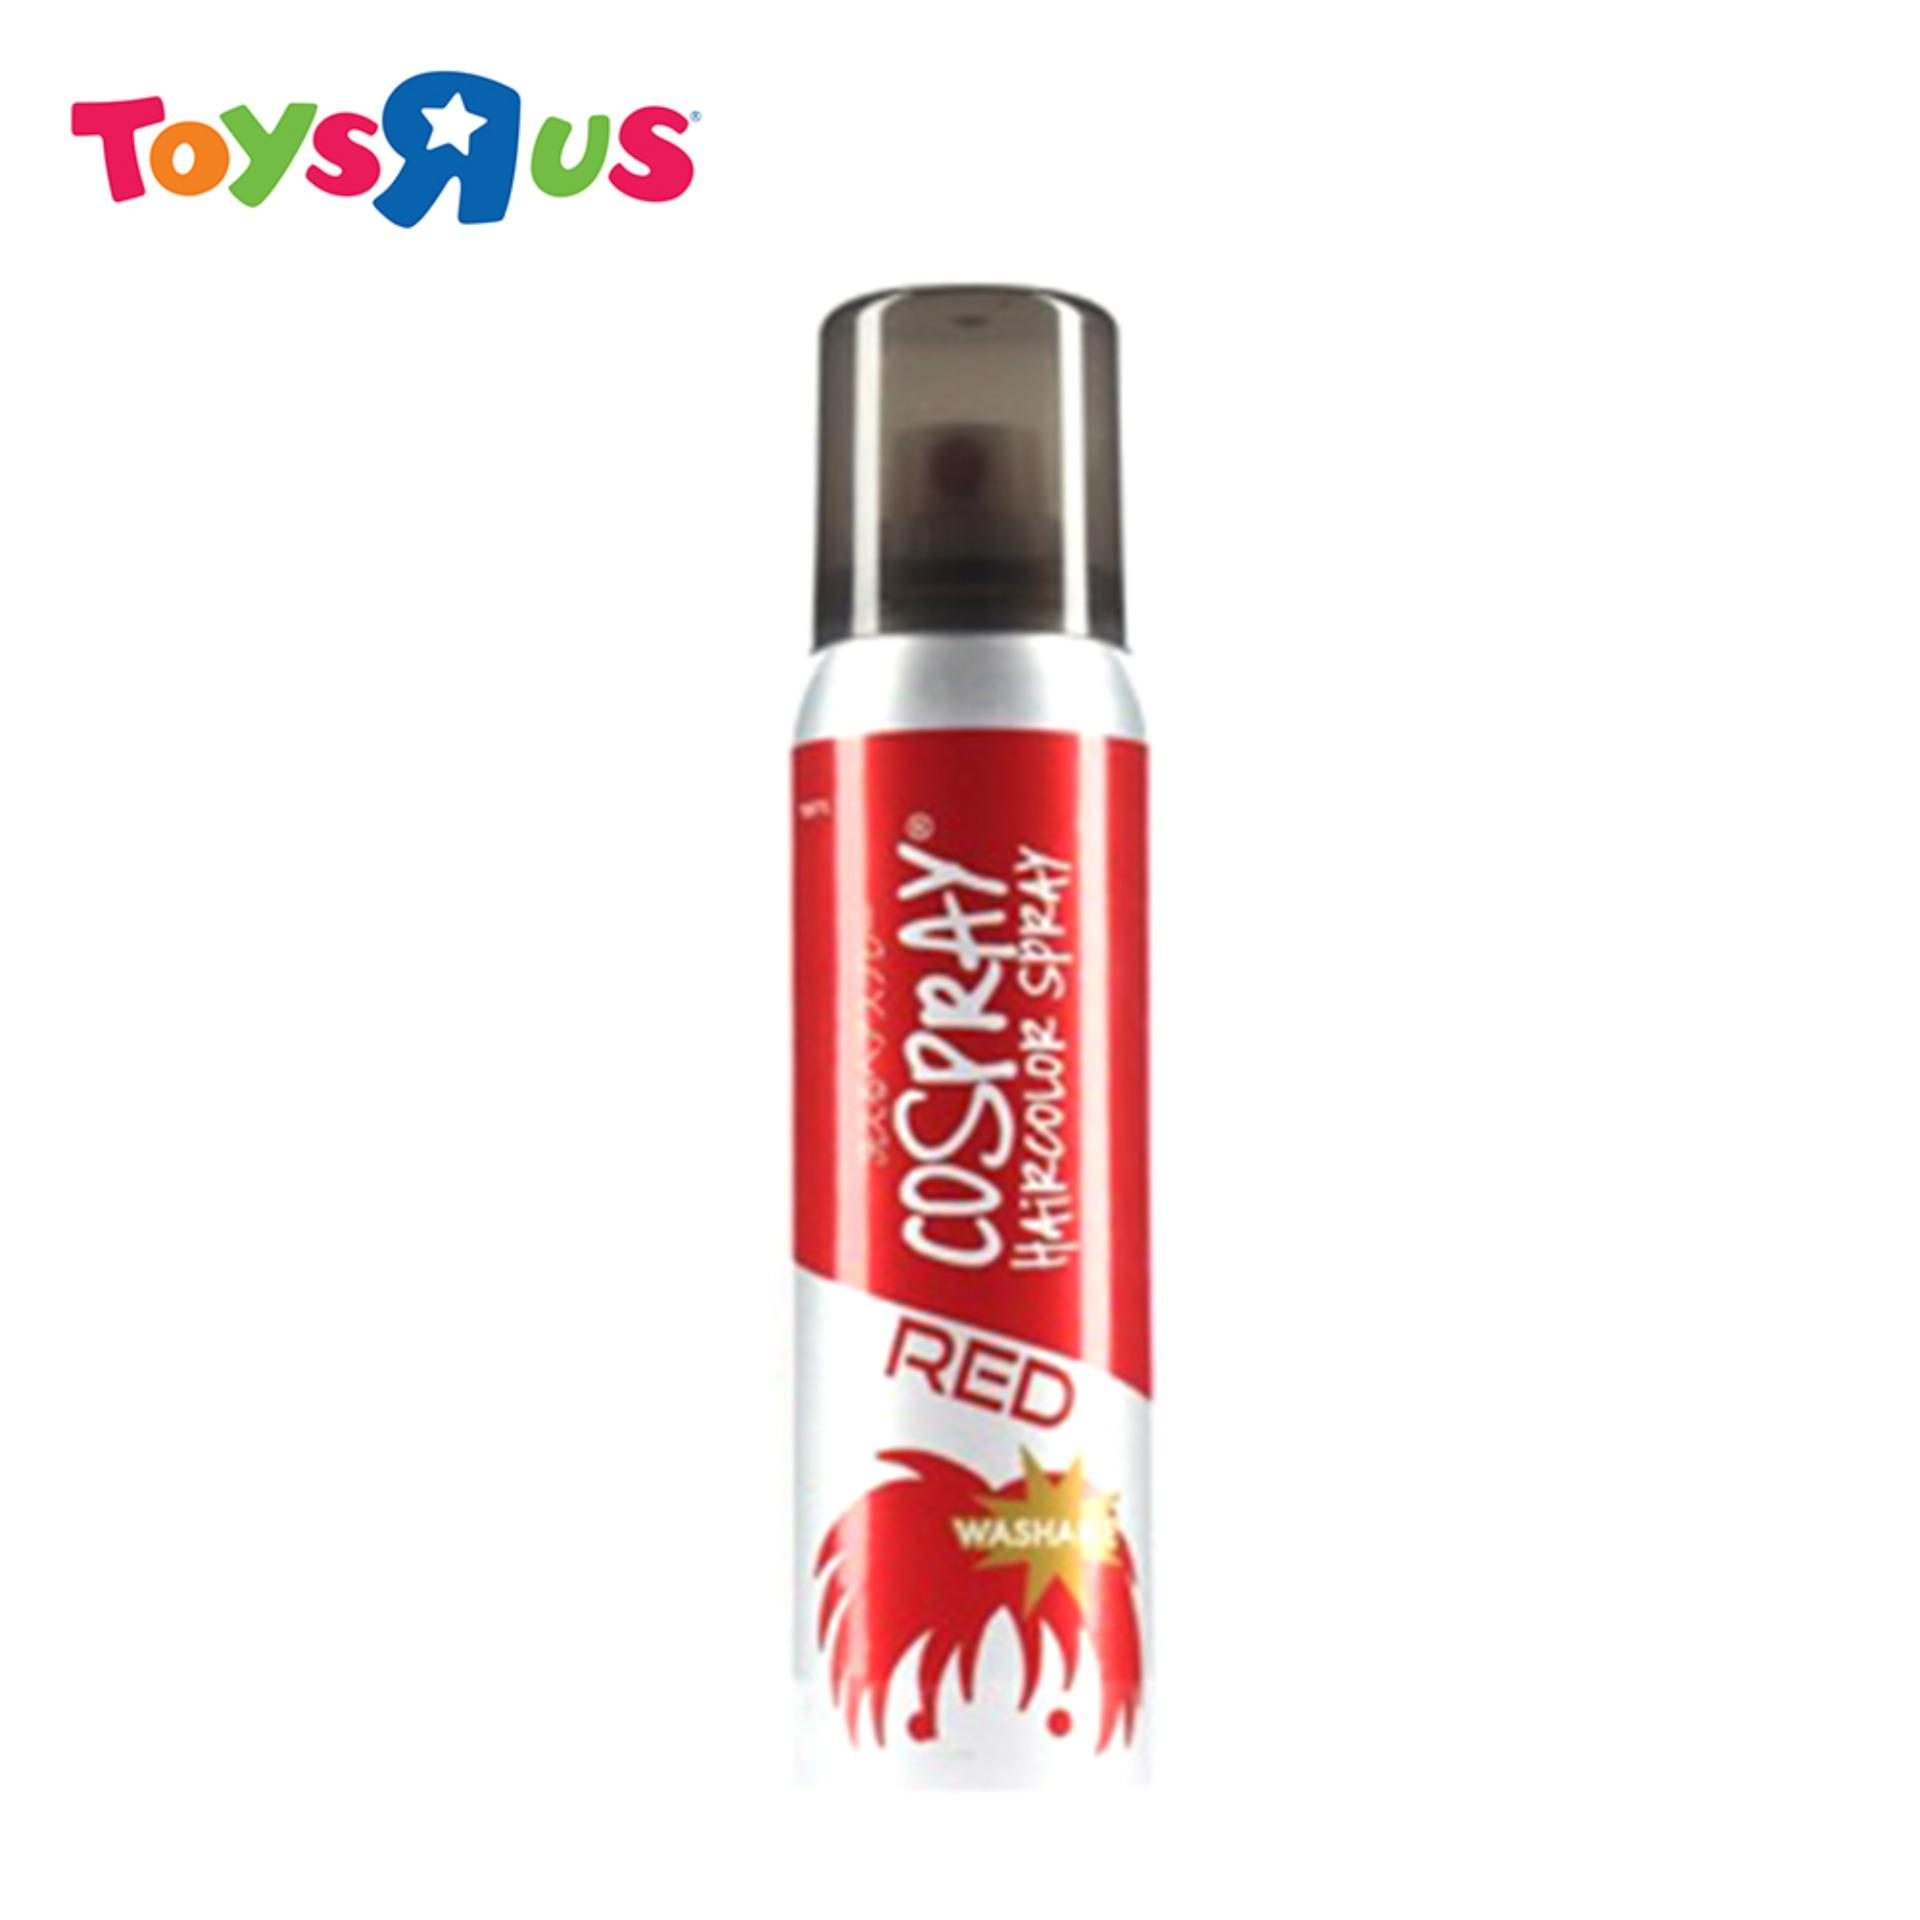 Cospray Washable Hair Color Spray (red) By Toys R Us